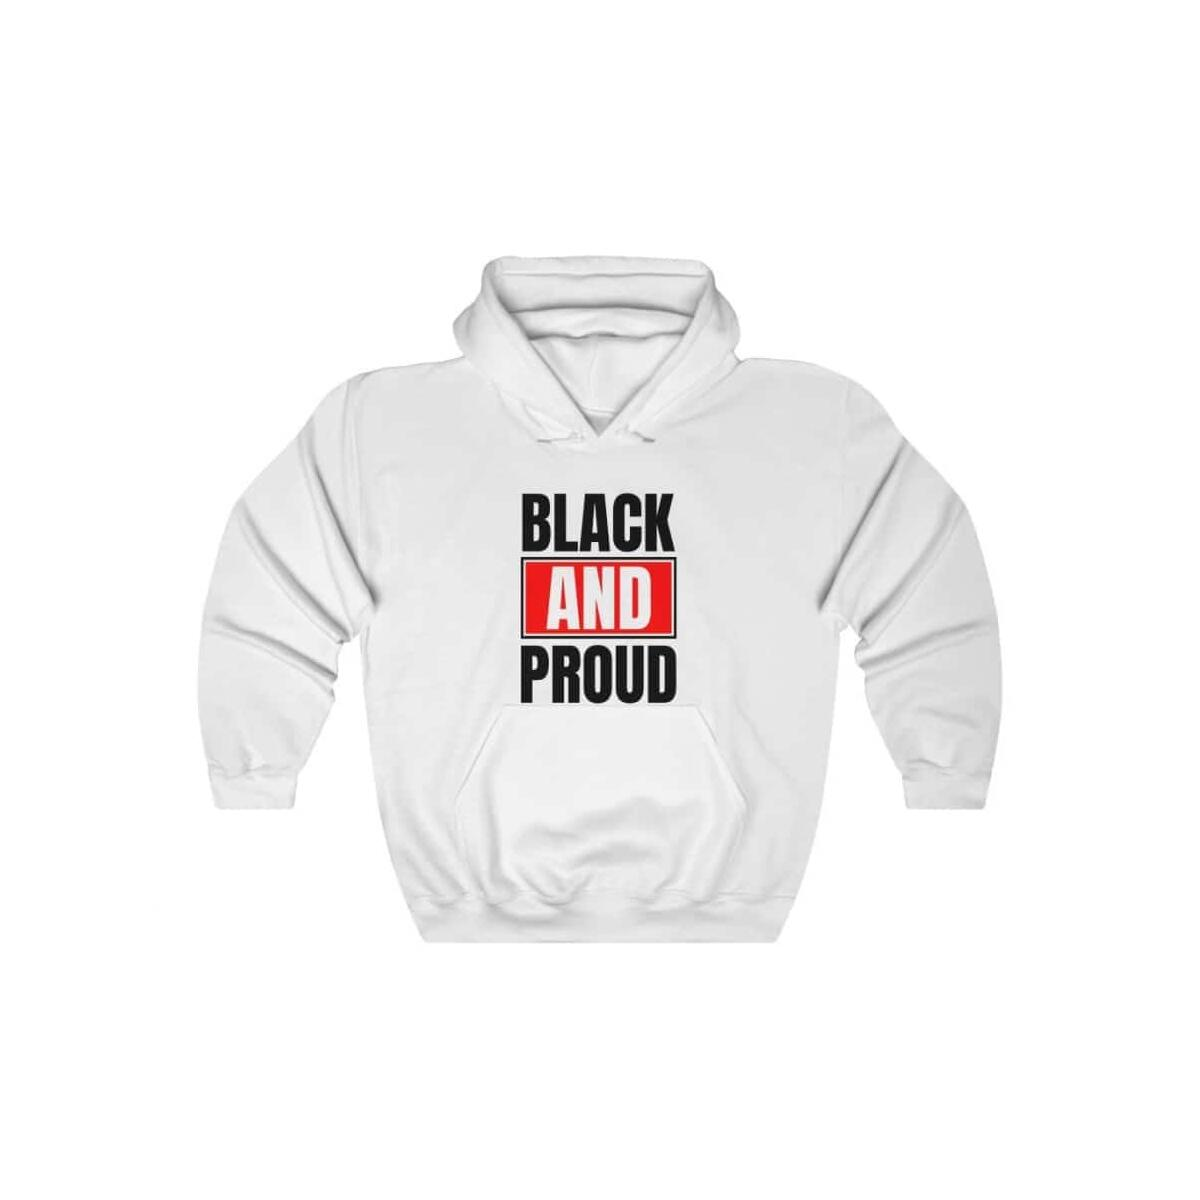 Afrocentric BLACK AND PROUD Hooded Sweatshirt, White / 2XL